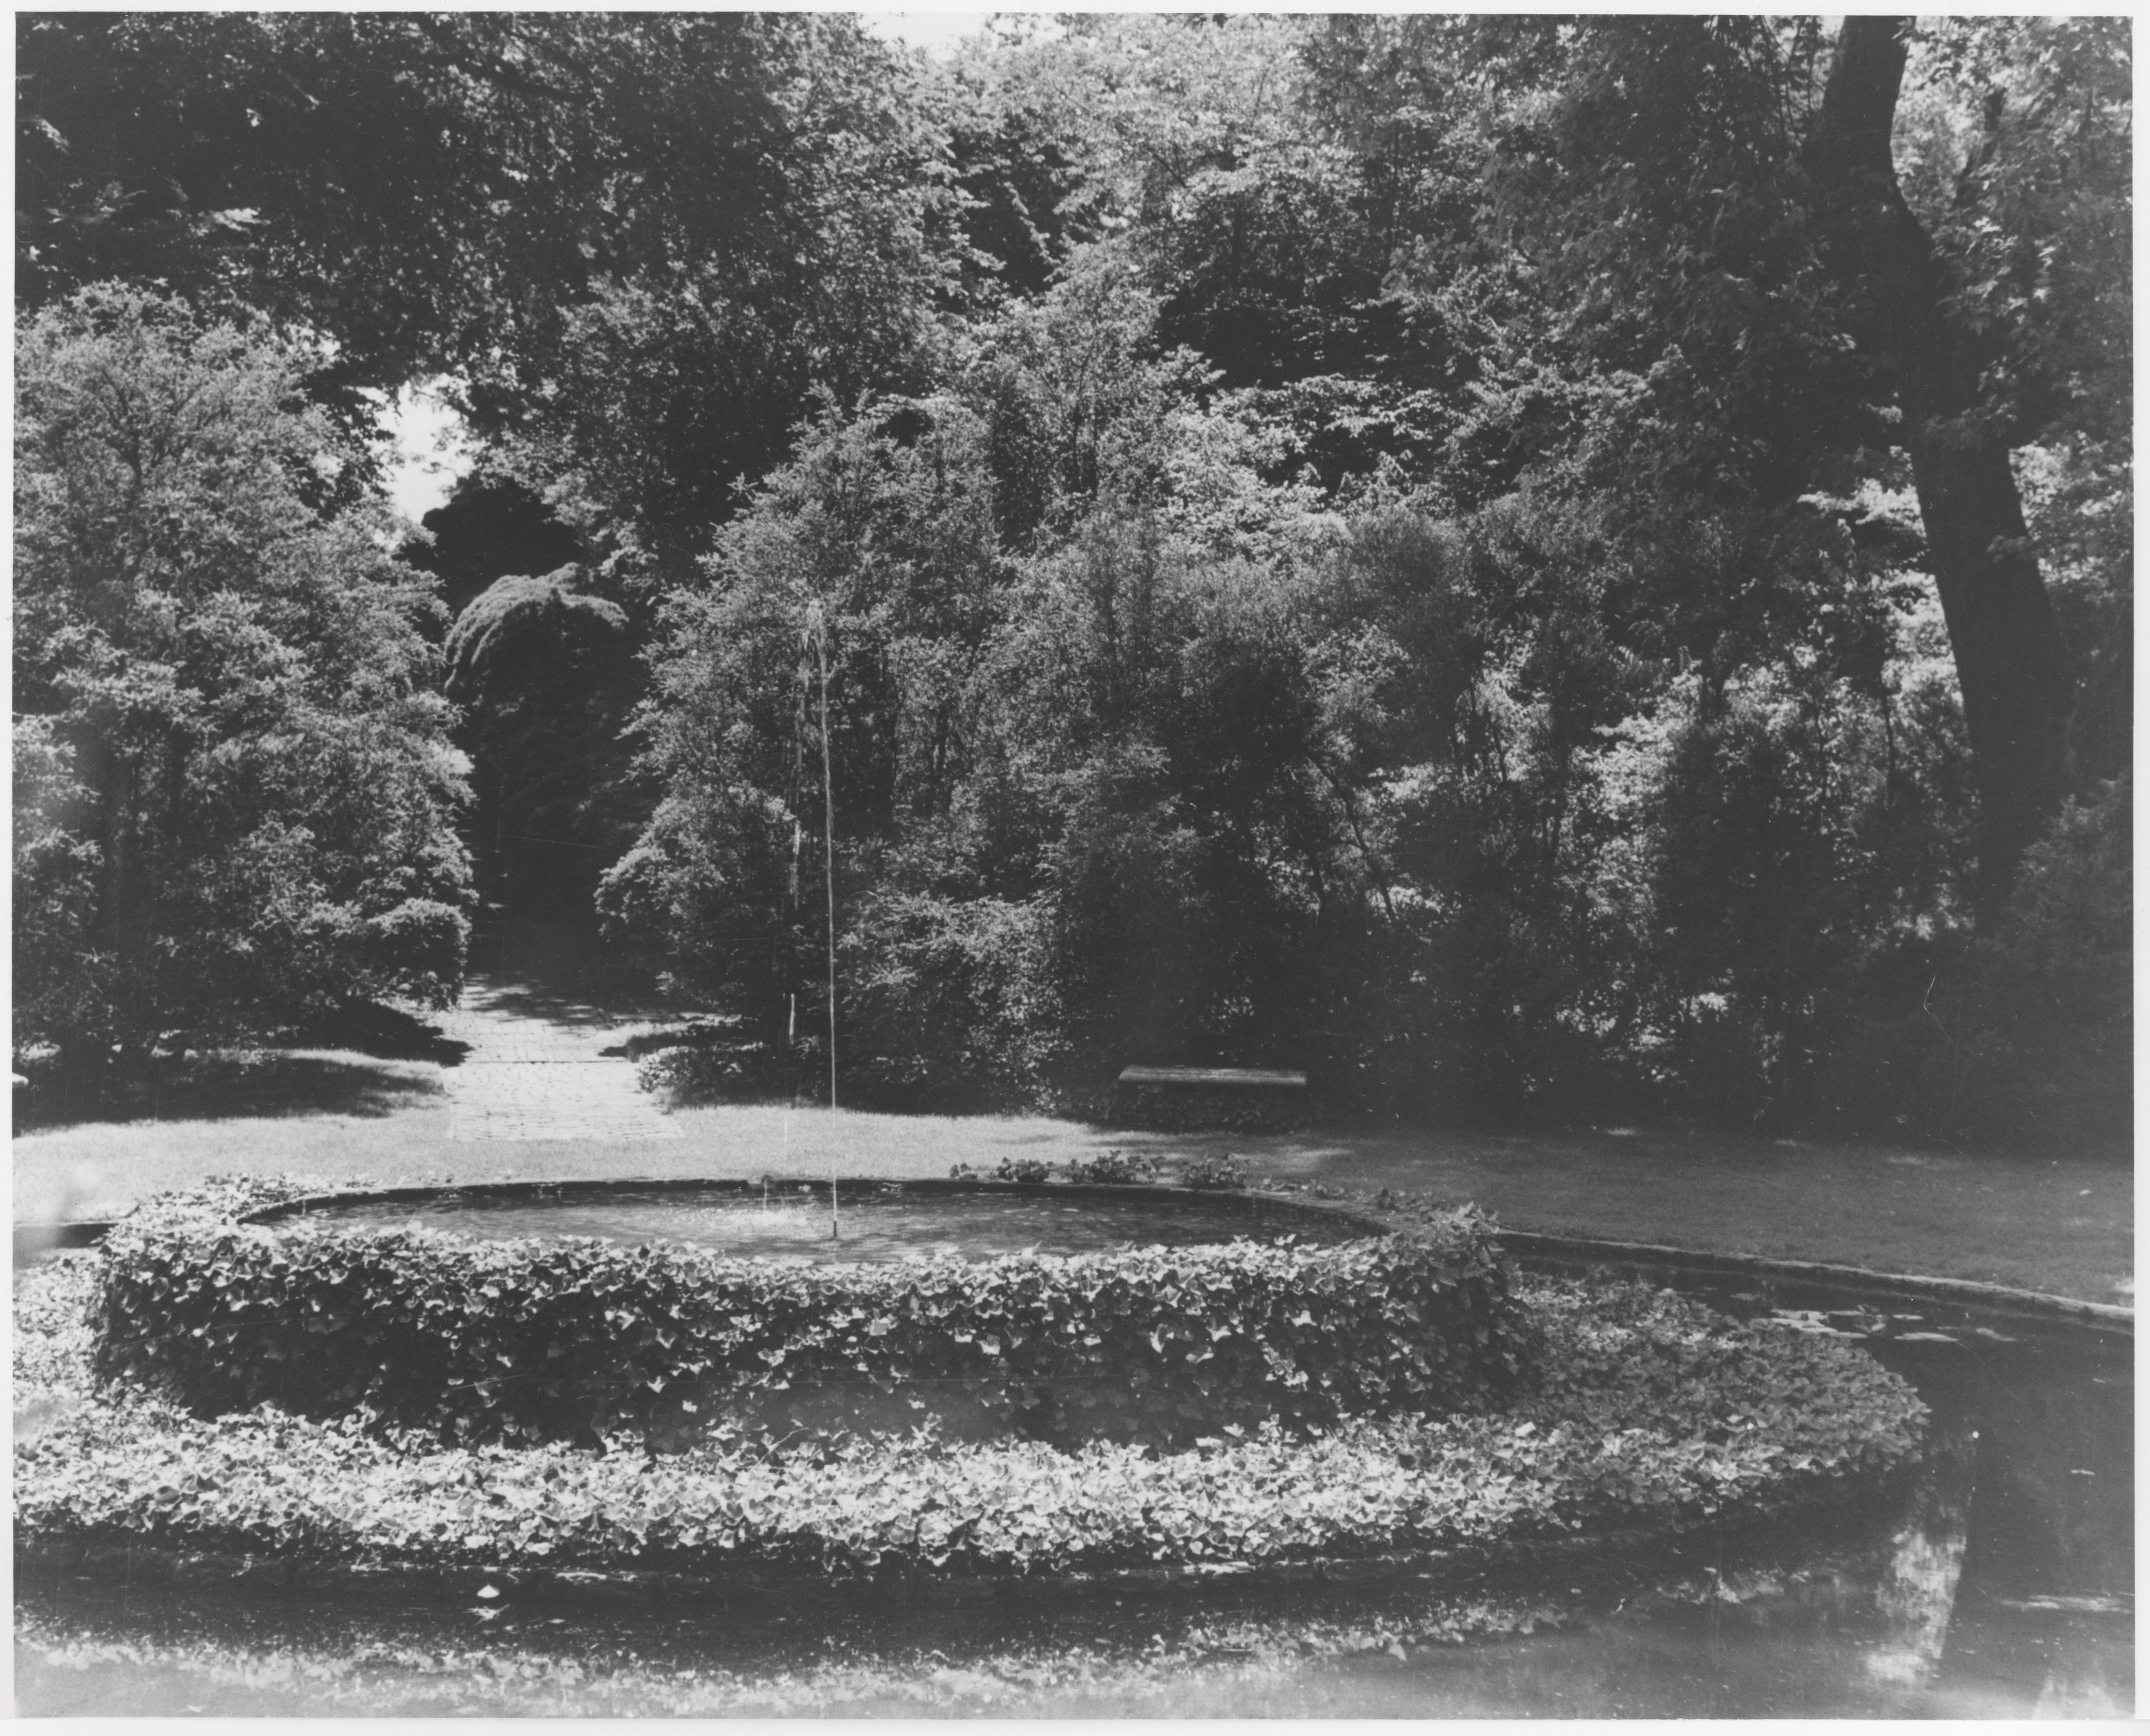 Ellipse, central pool before Provençal fountain